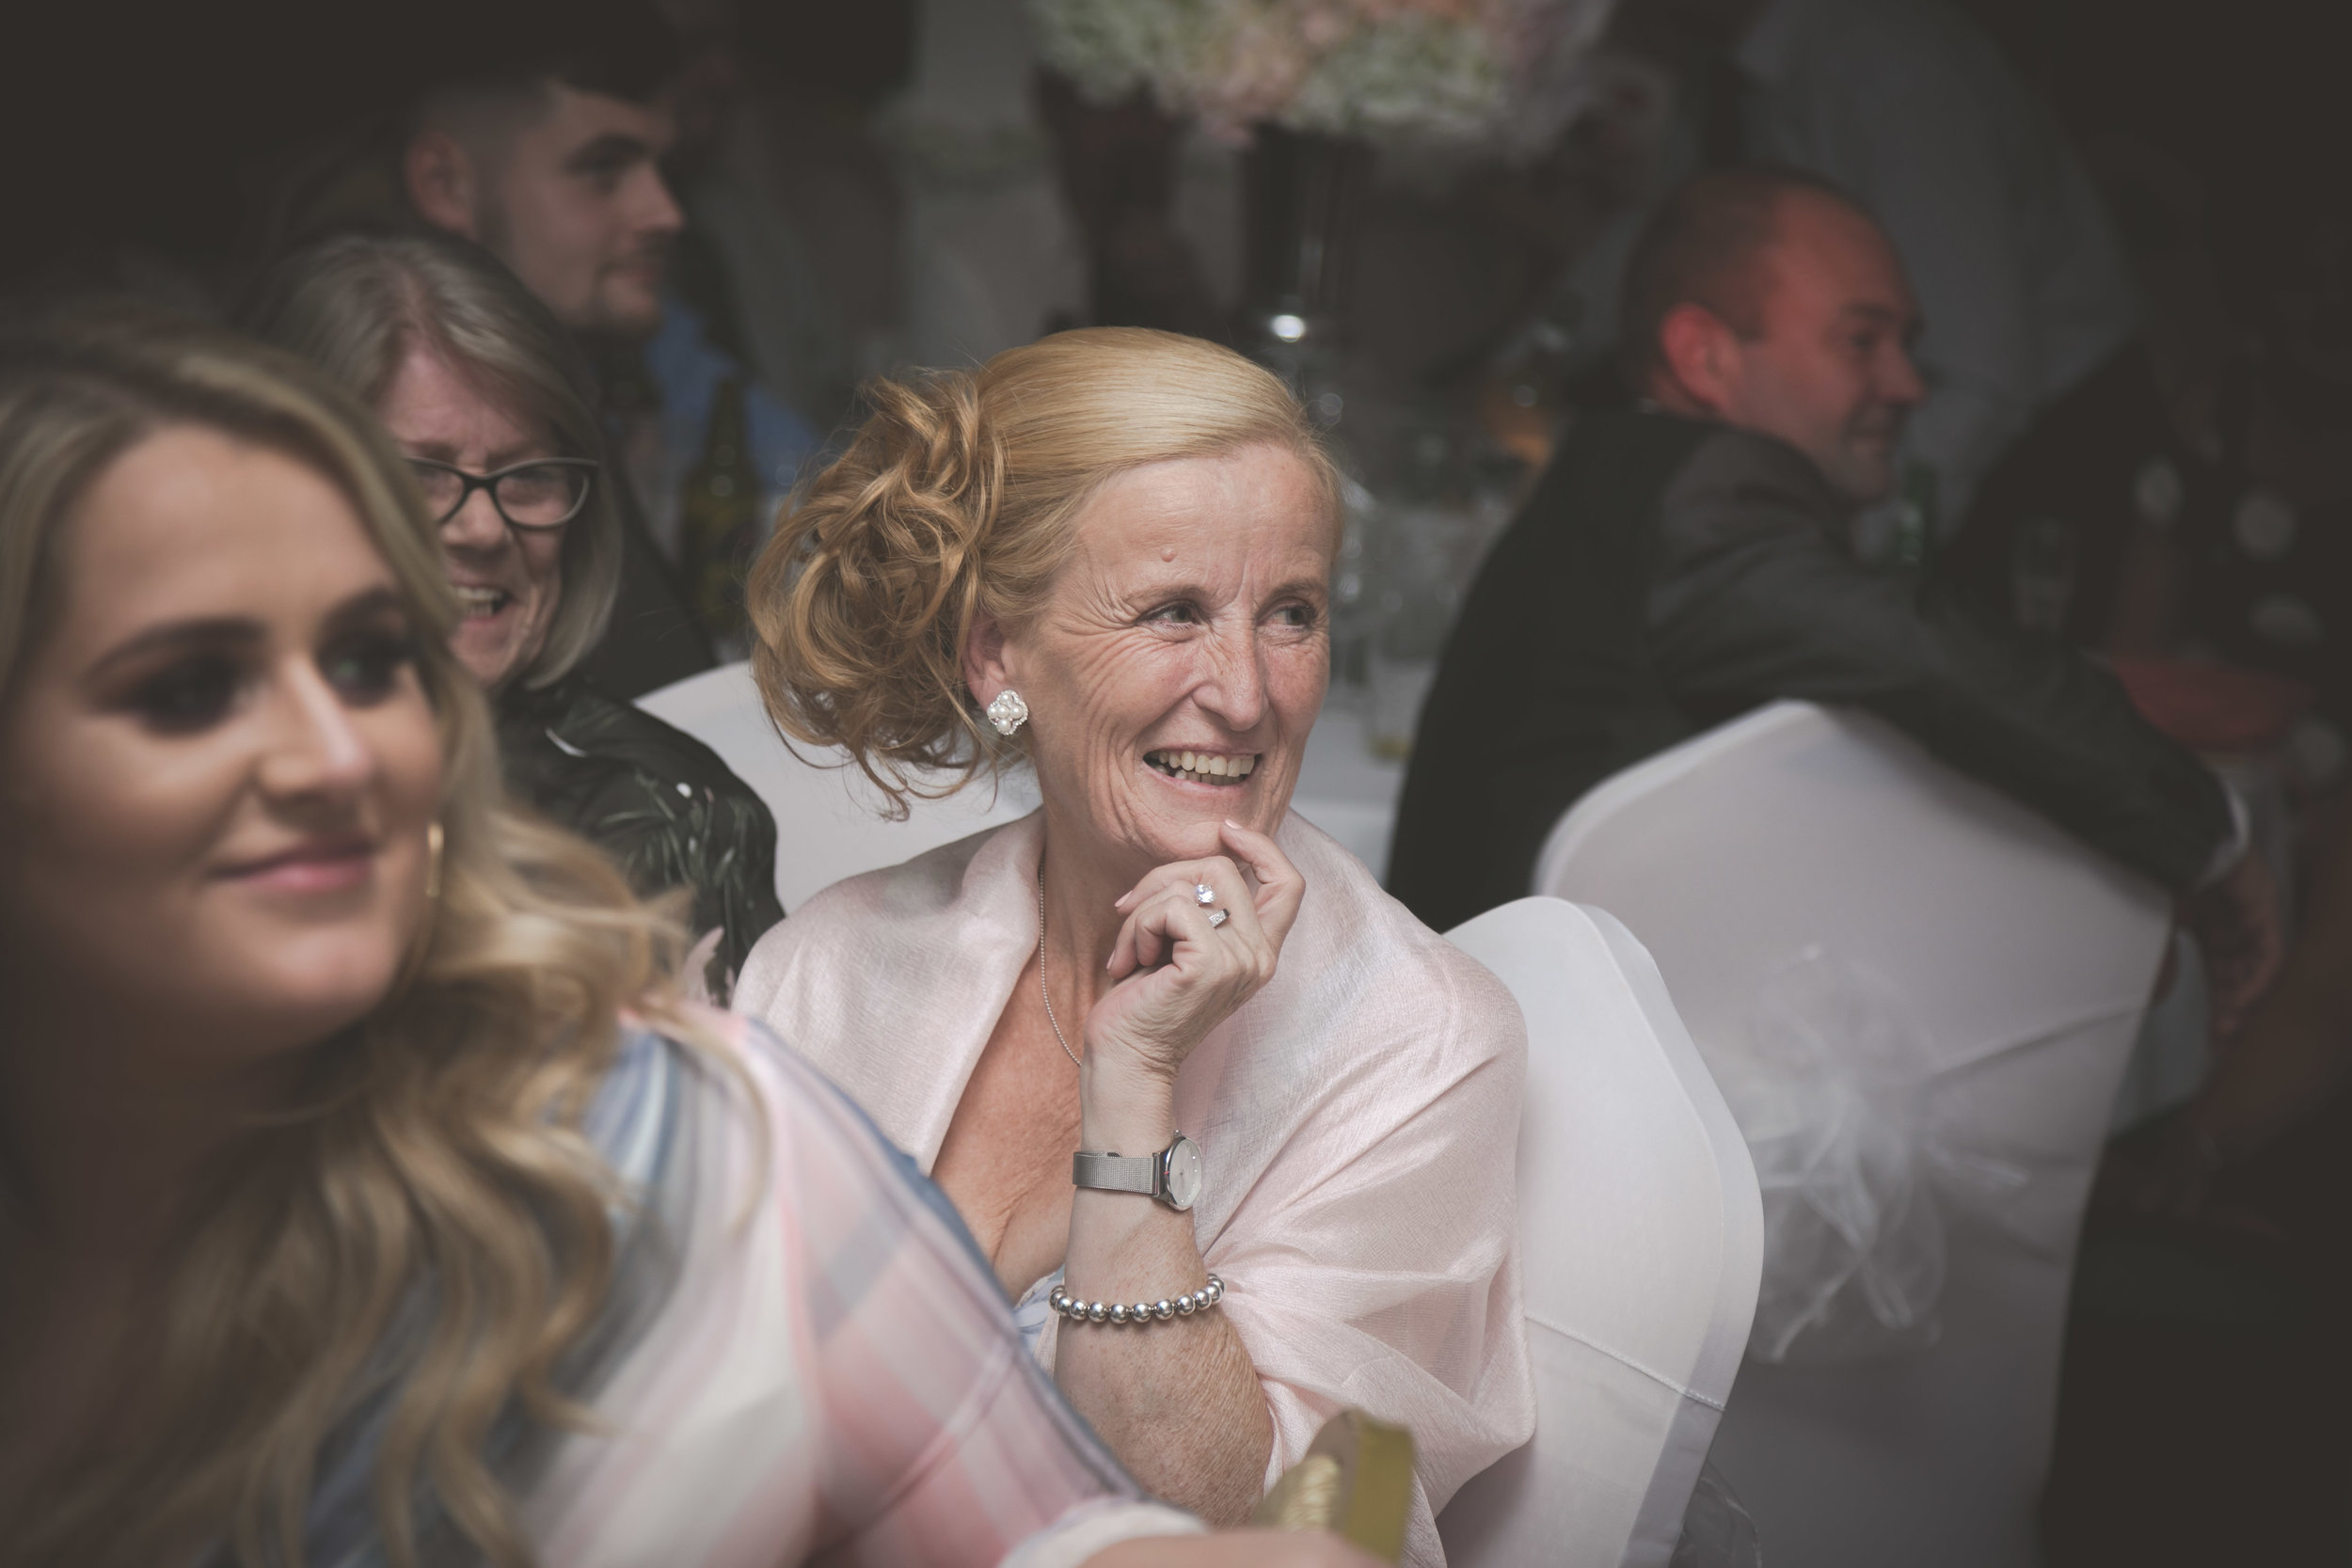 Wedding+photos+at+st+georges (37 of 39).jpg